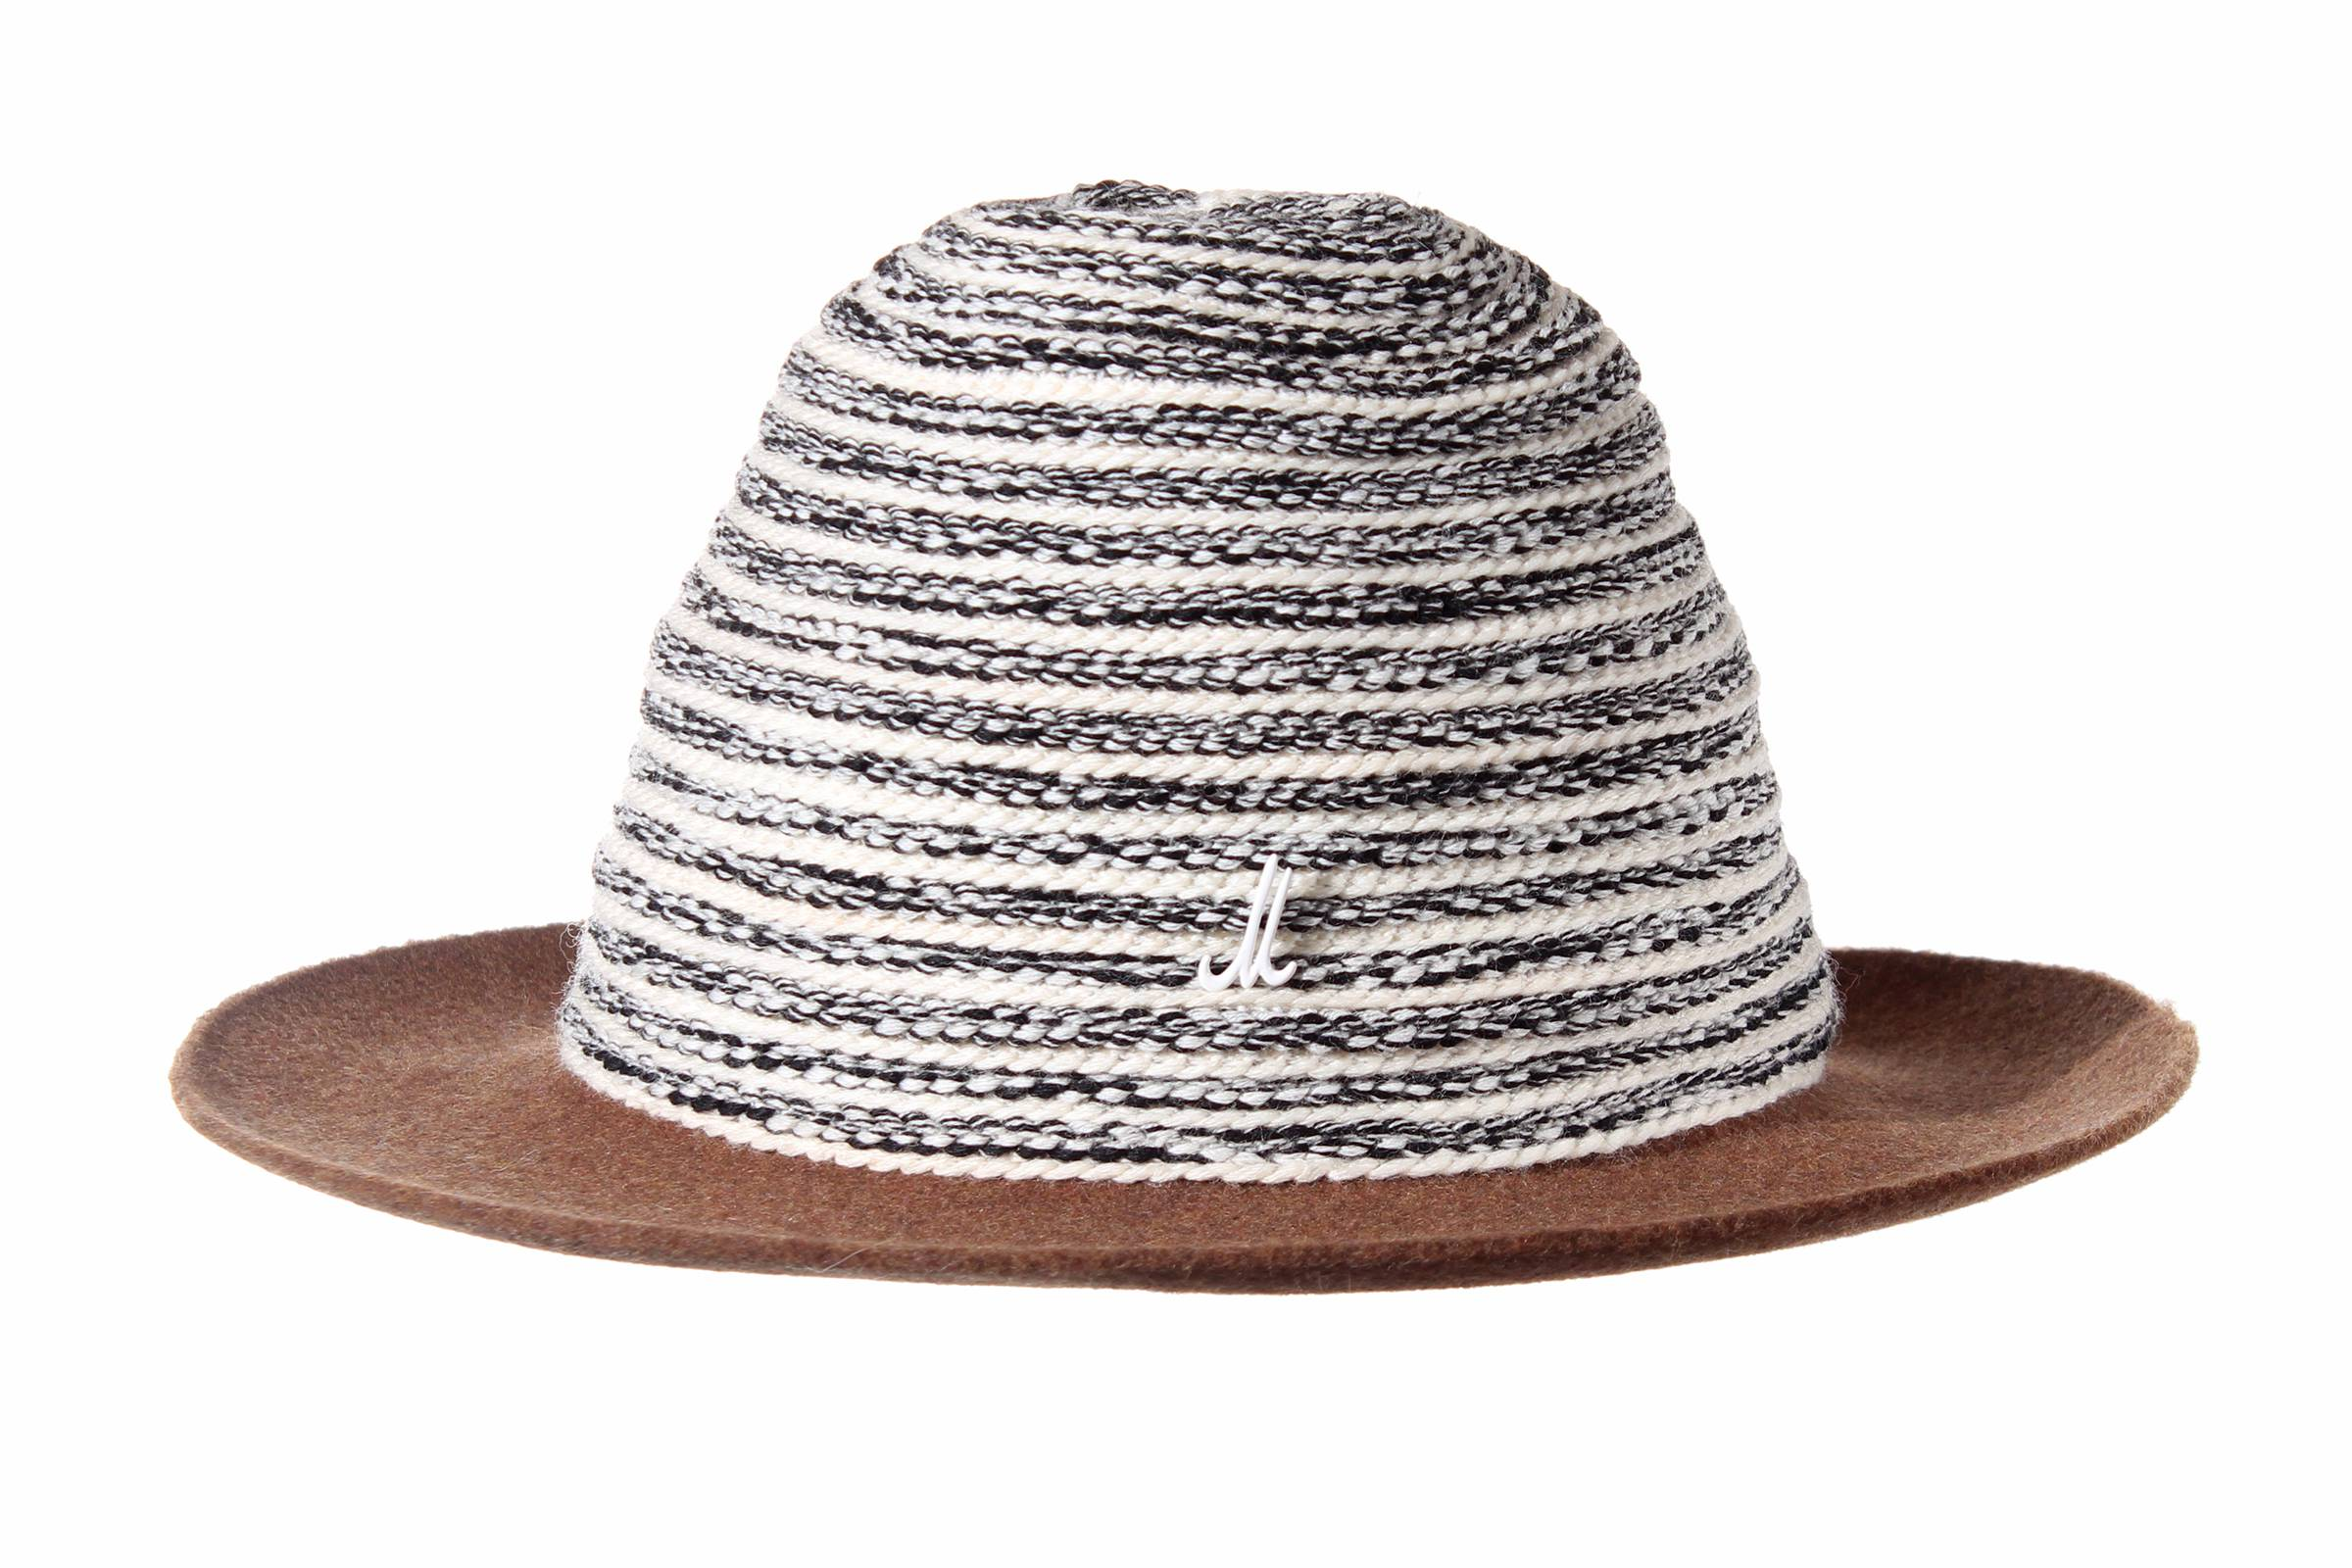 gentleman's hat URB UDO wool braid / wool felt